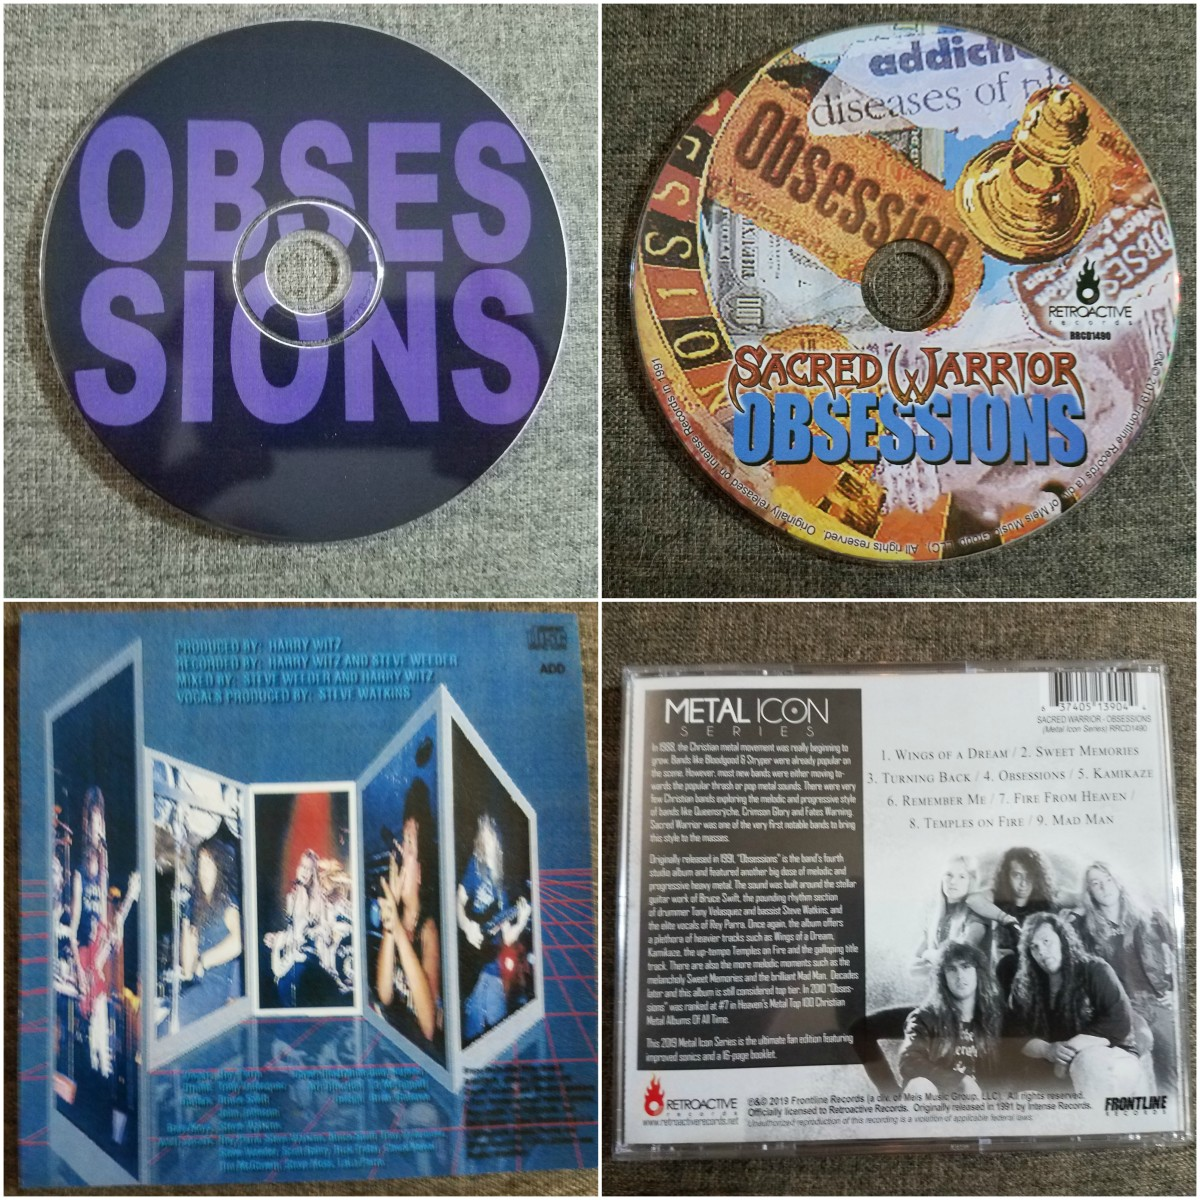 Left pix: disc print and back cover of CD-R bootleg version. Right pix: disc print and back cover of legit Retroactive Records reissue.